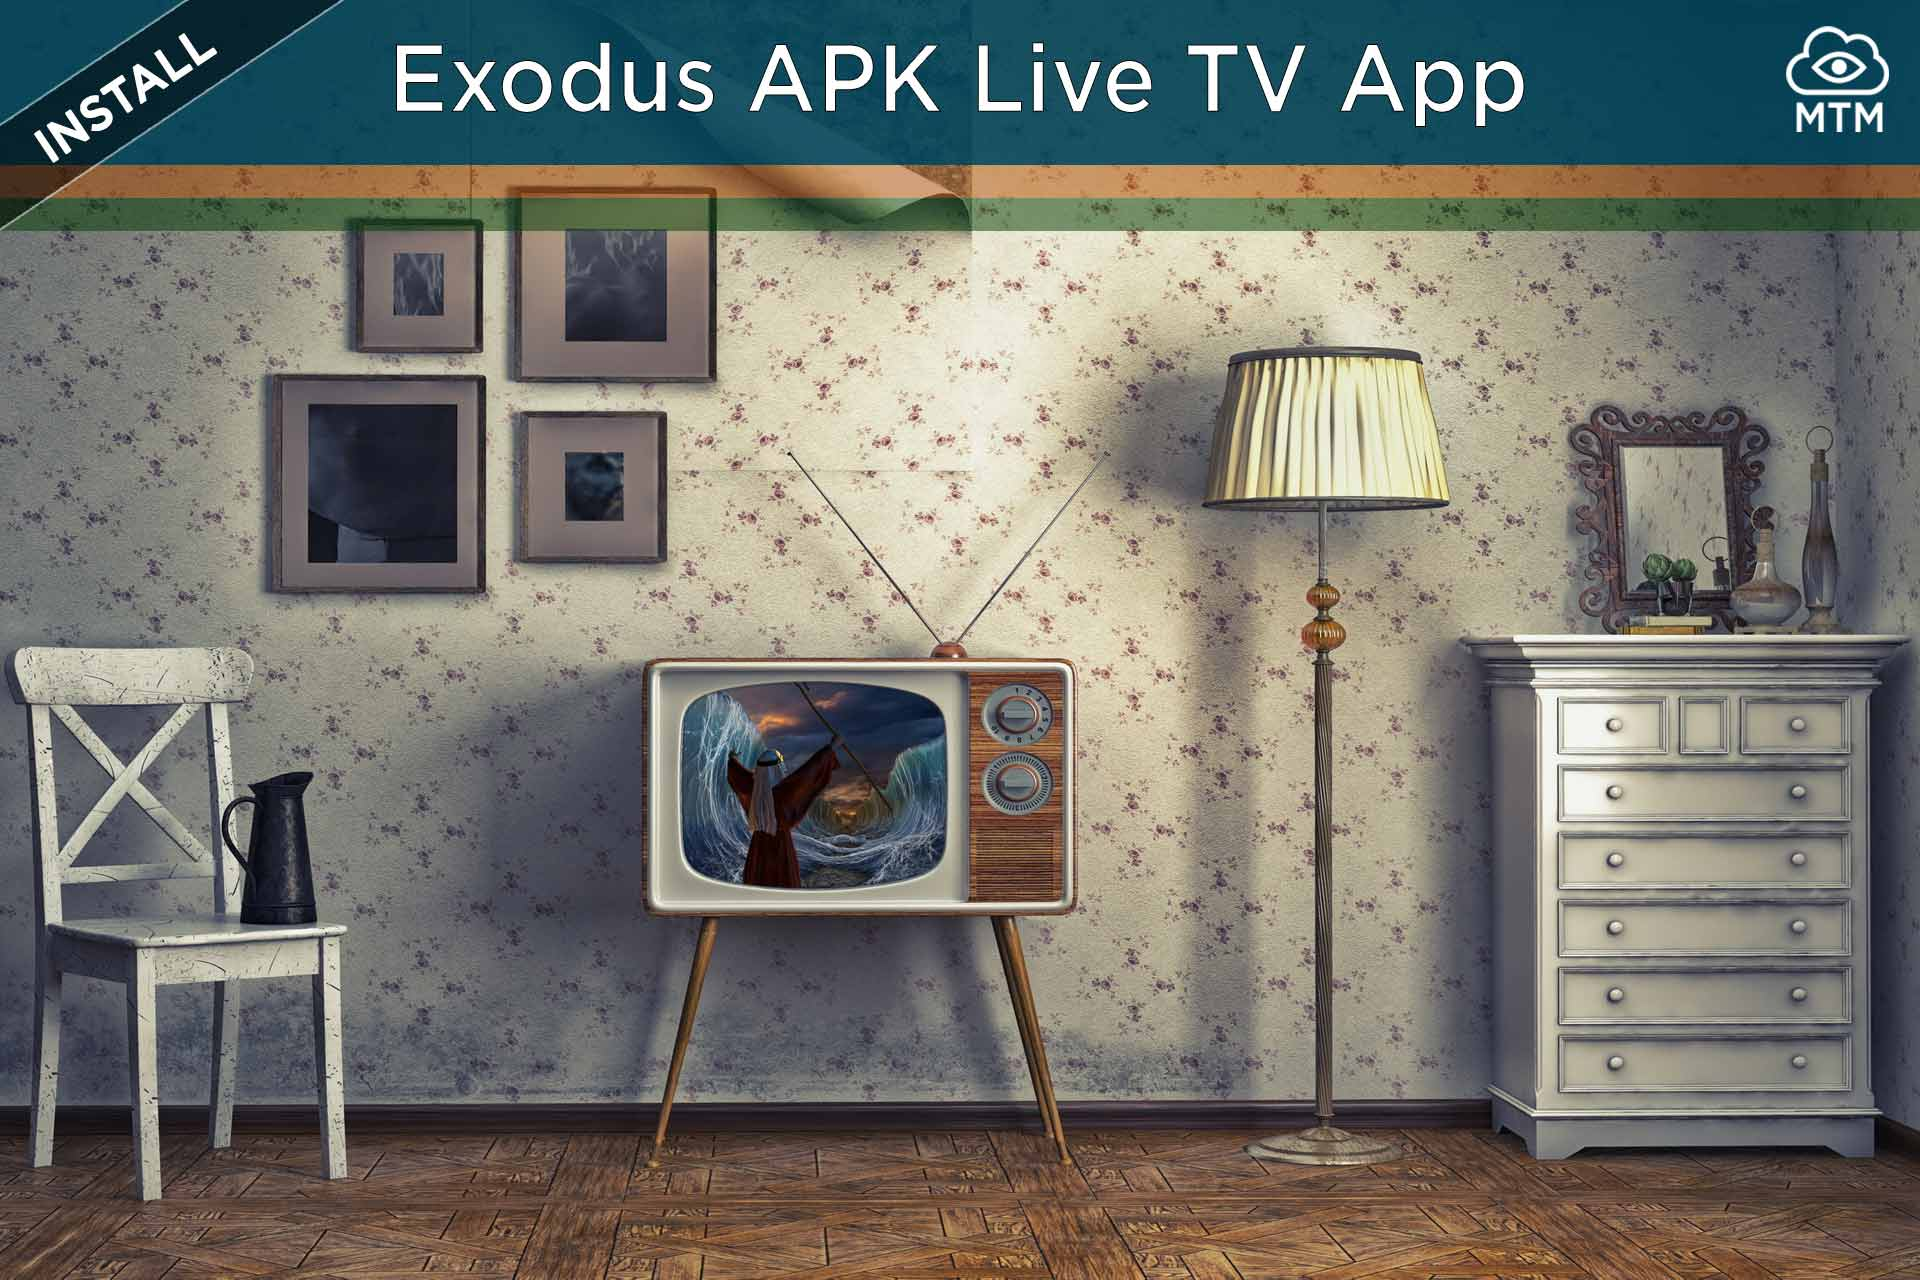 Exodus Live TV APK Download | Install for Free IPTV Streams